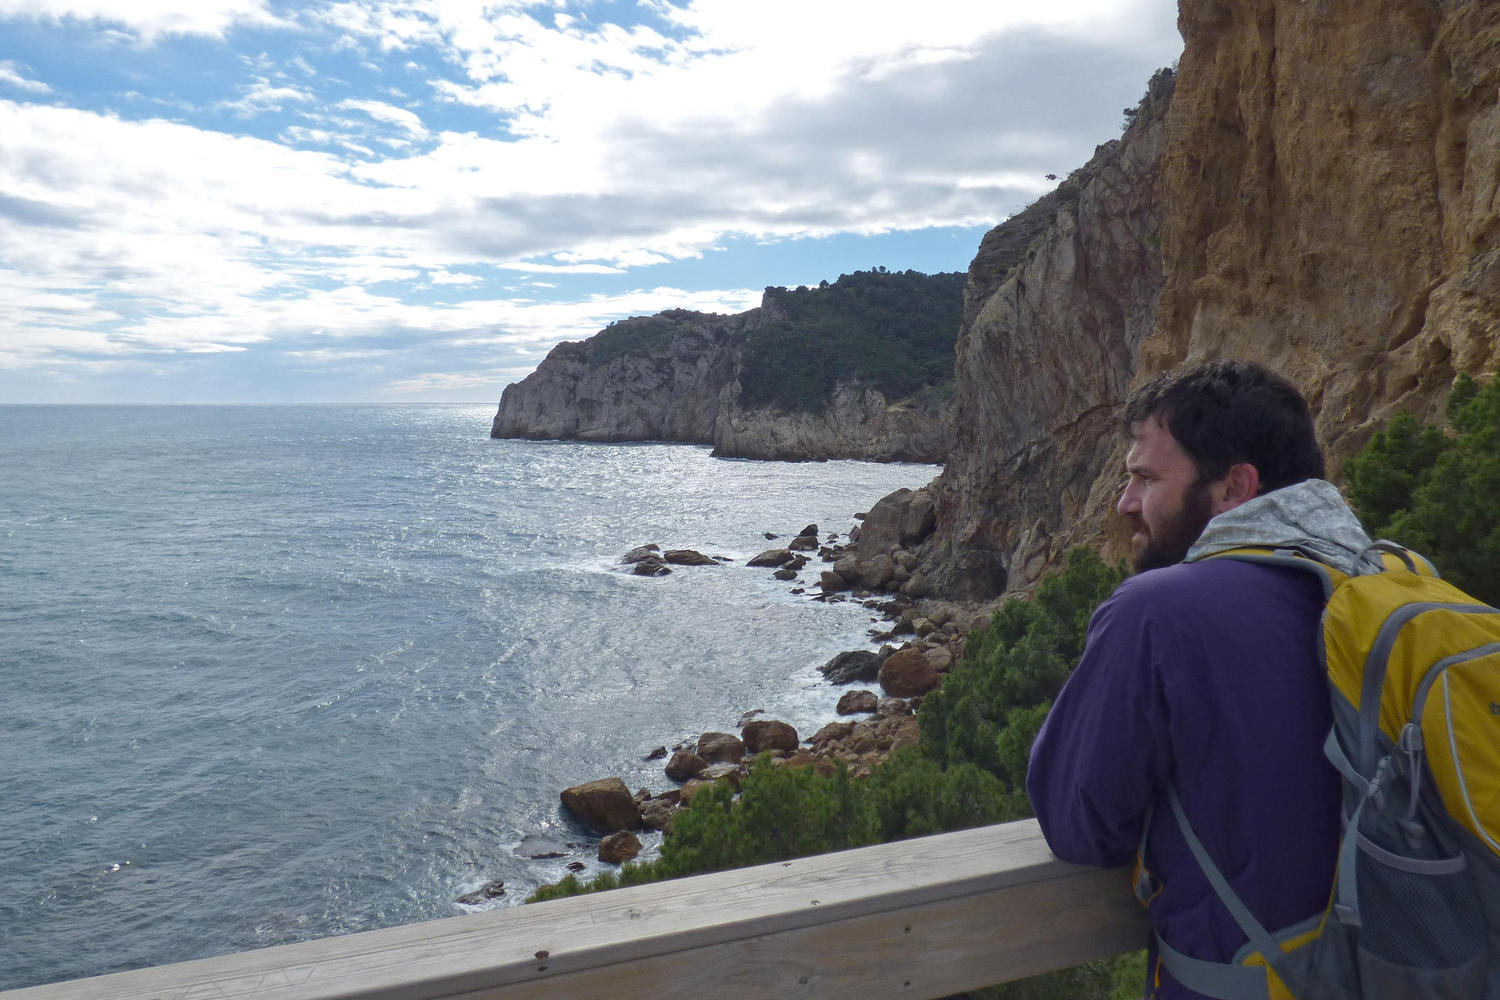 Overlooking the high cliffs of the Costa Brava